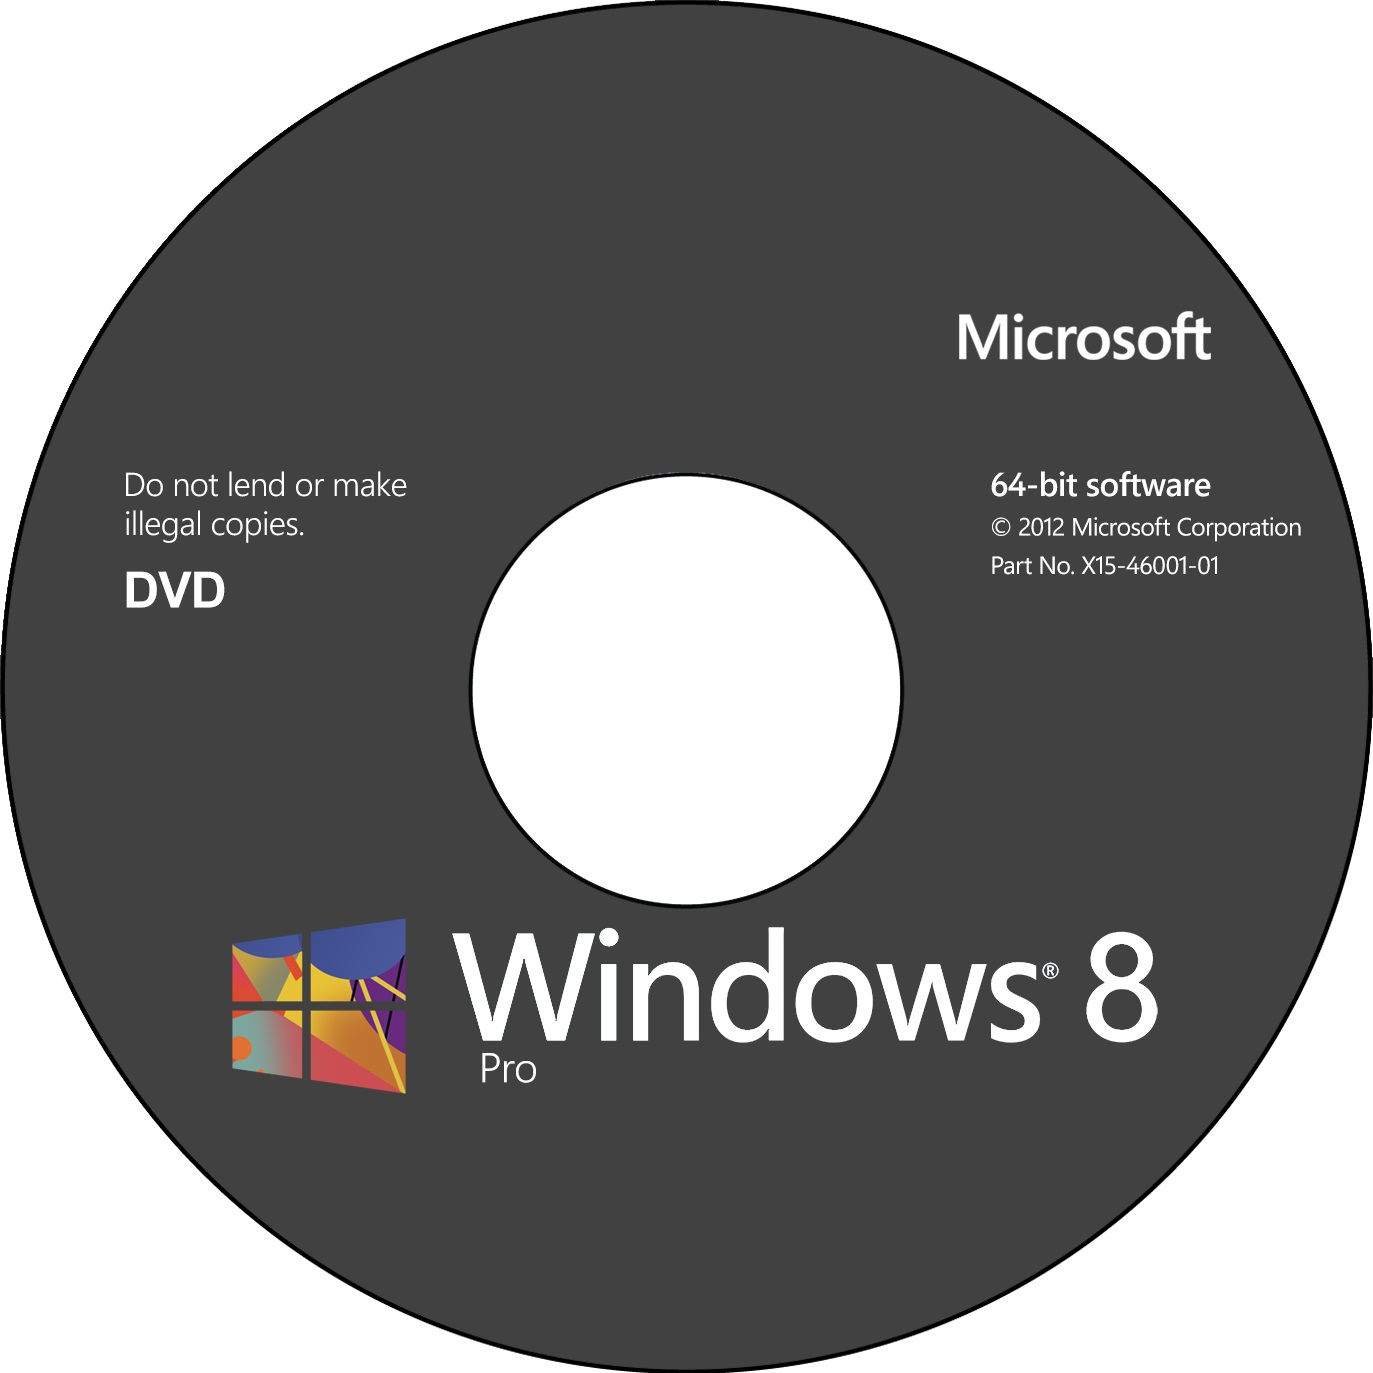 To Download Windows 8 Pro >> DOWNLOAD HERE